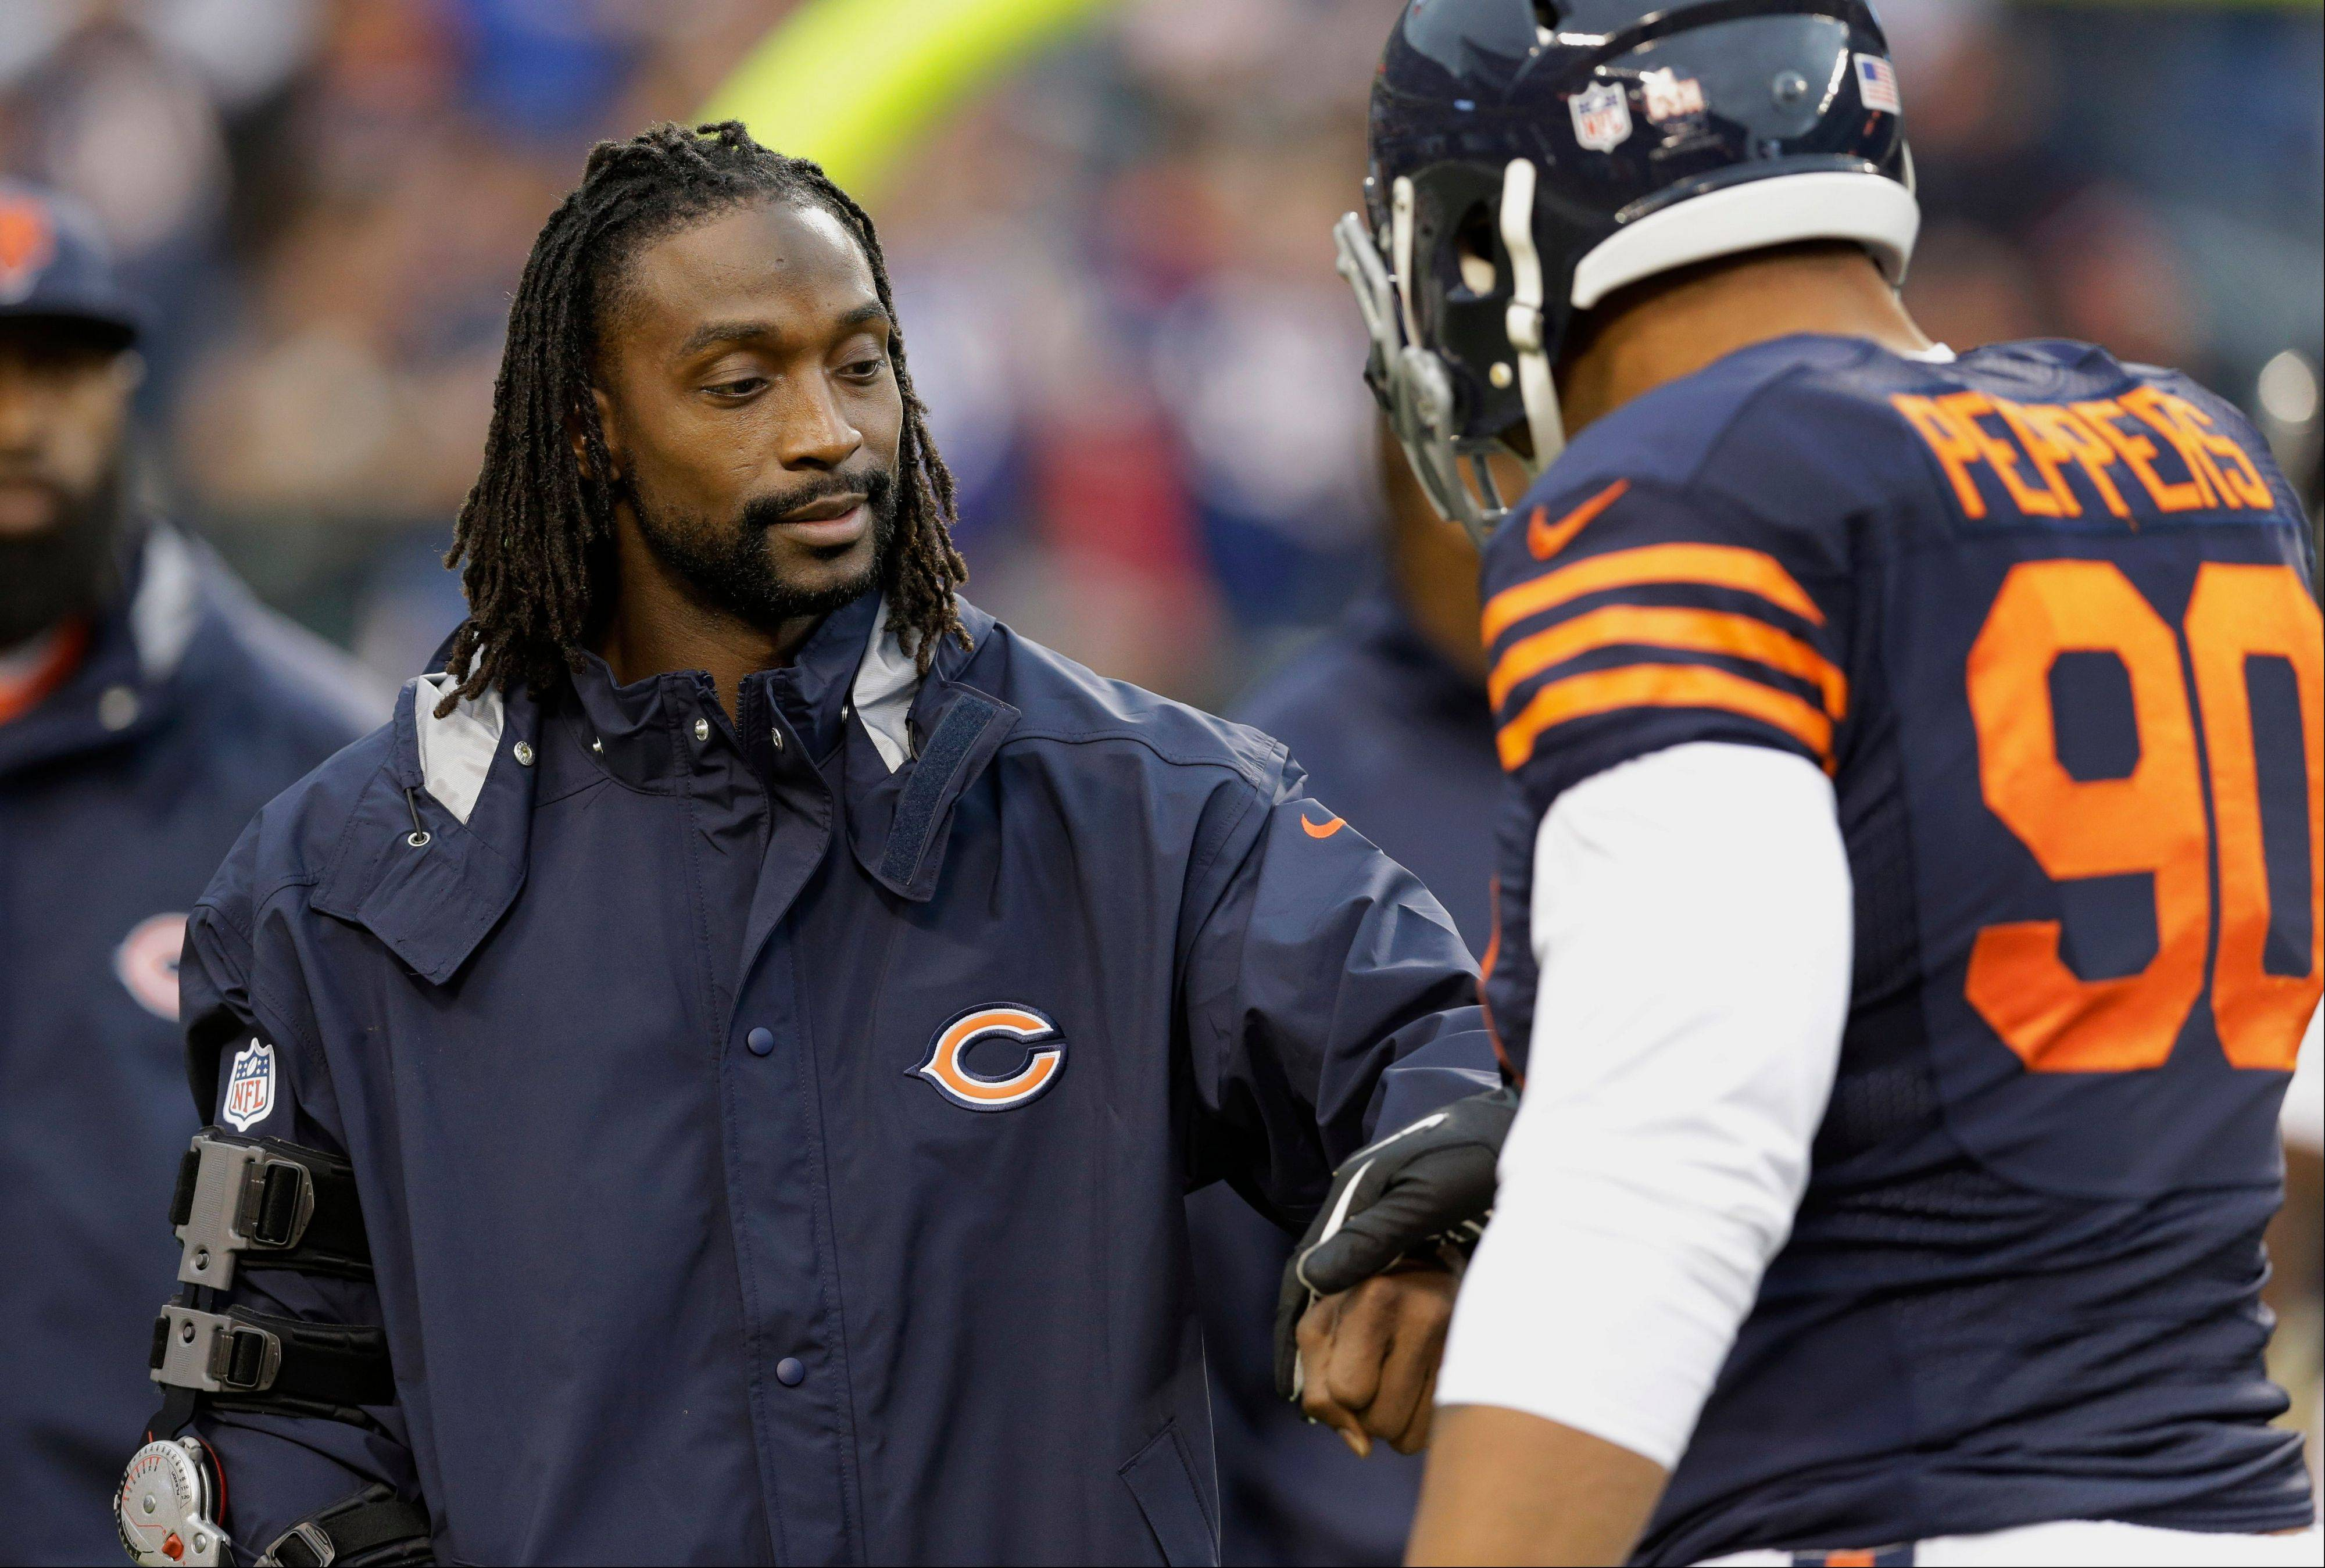 The Bears confirmed Monday that Charles Tillman, who has been rehabbing a torn triceps, will not return this season, but it's possible that linebacker Lance Briggs could play Sunday against Philadelphia.